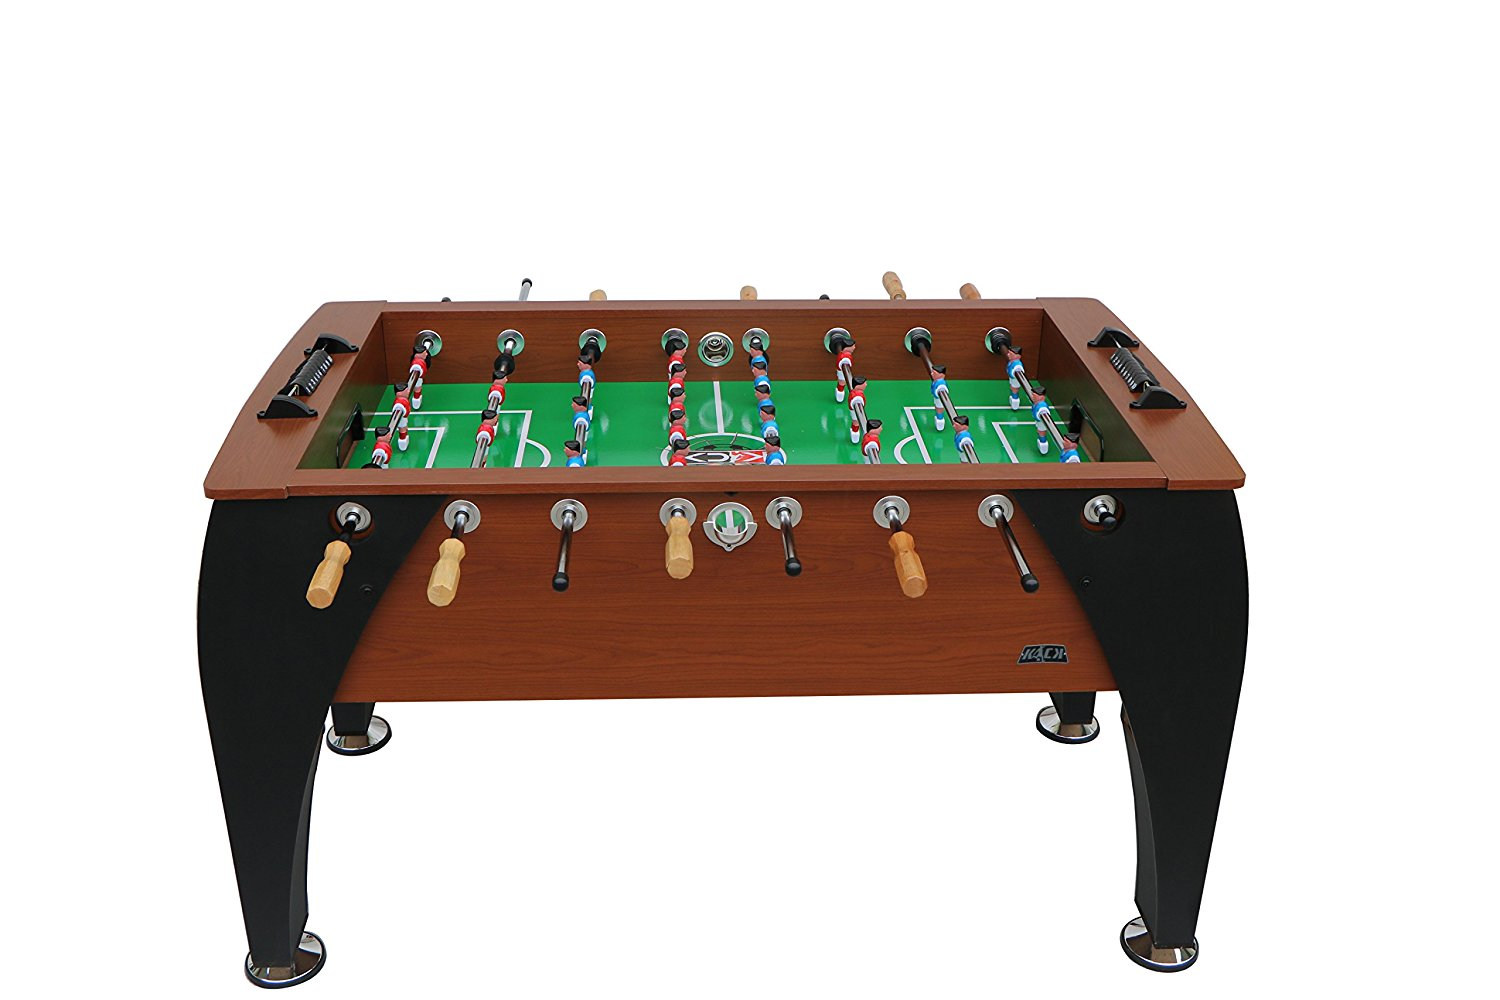 Kick legend foosball table review ref 39 s foosball table for Table 09 reviews